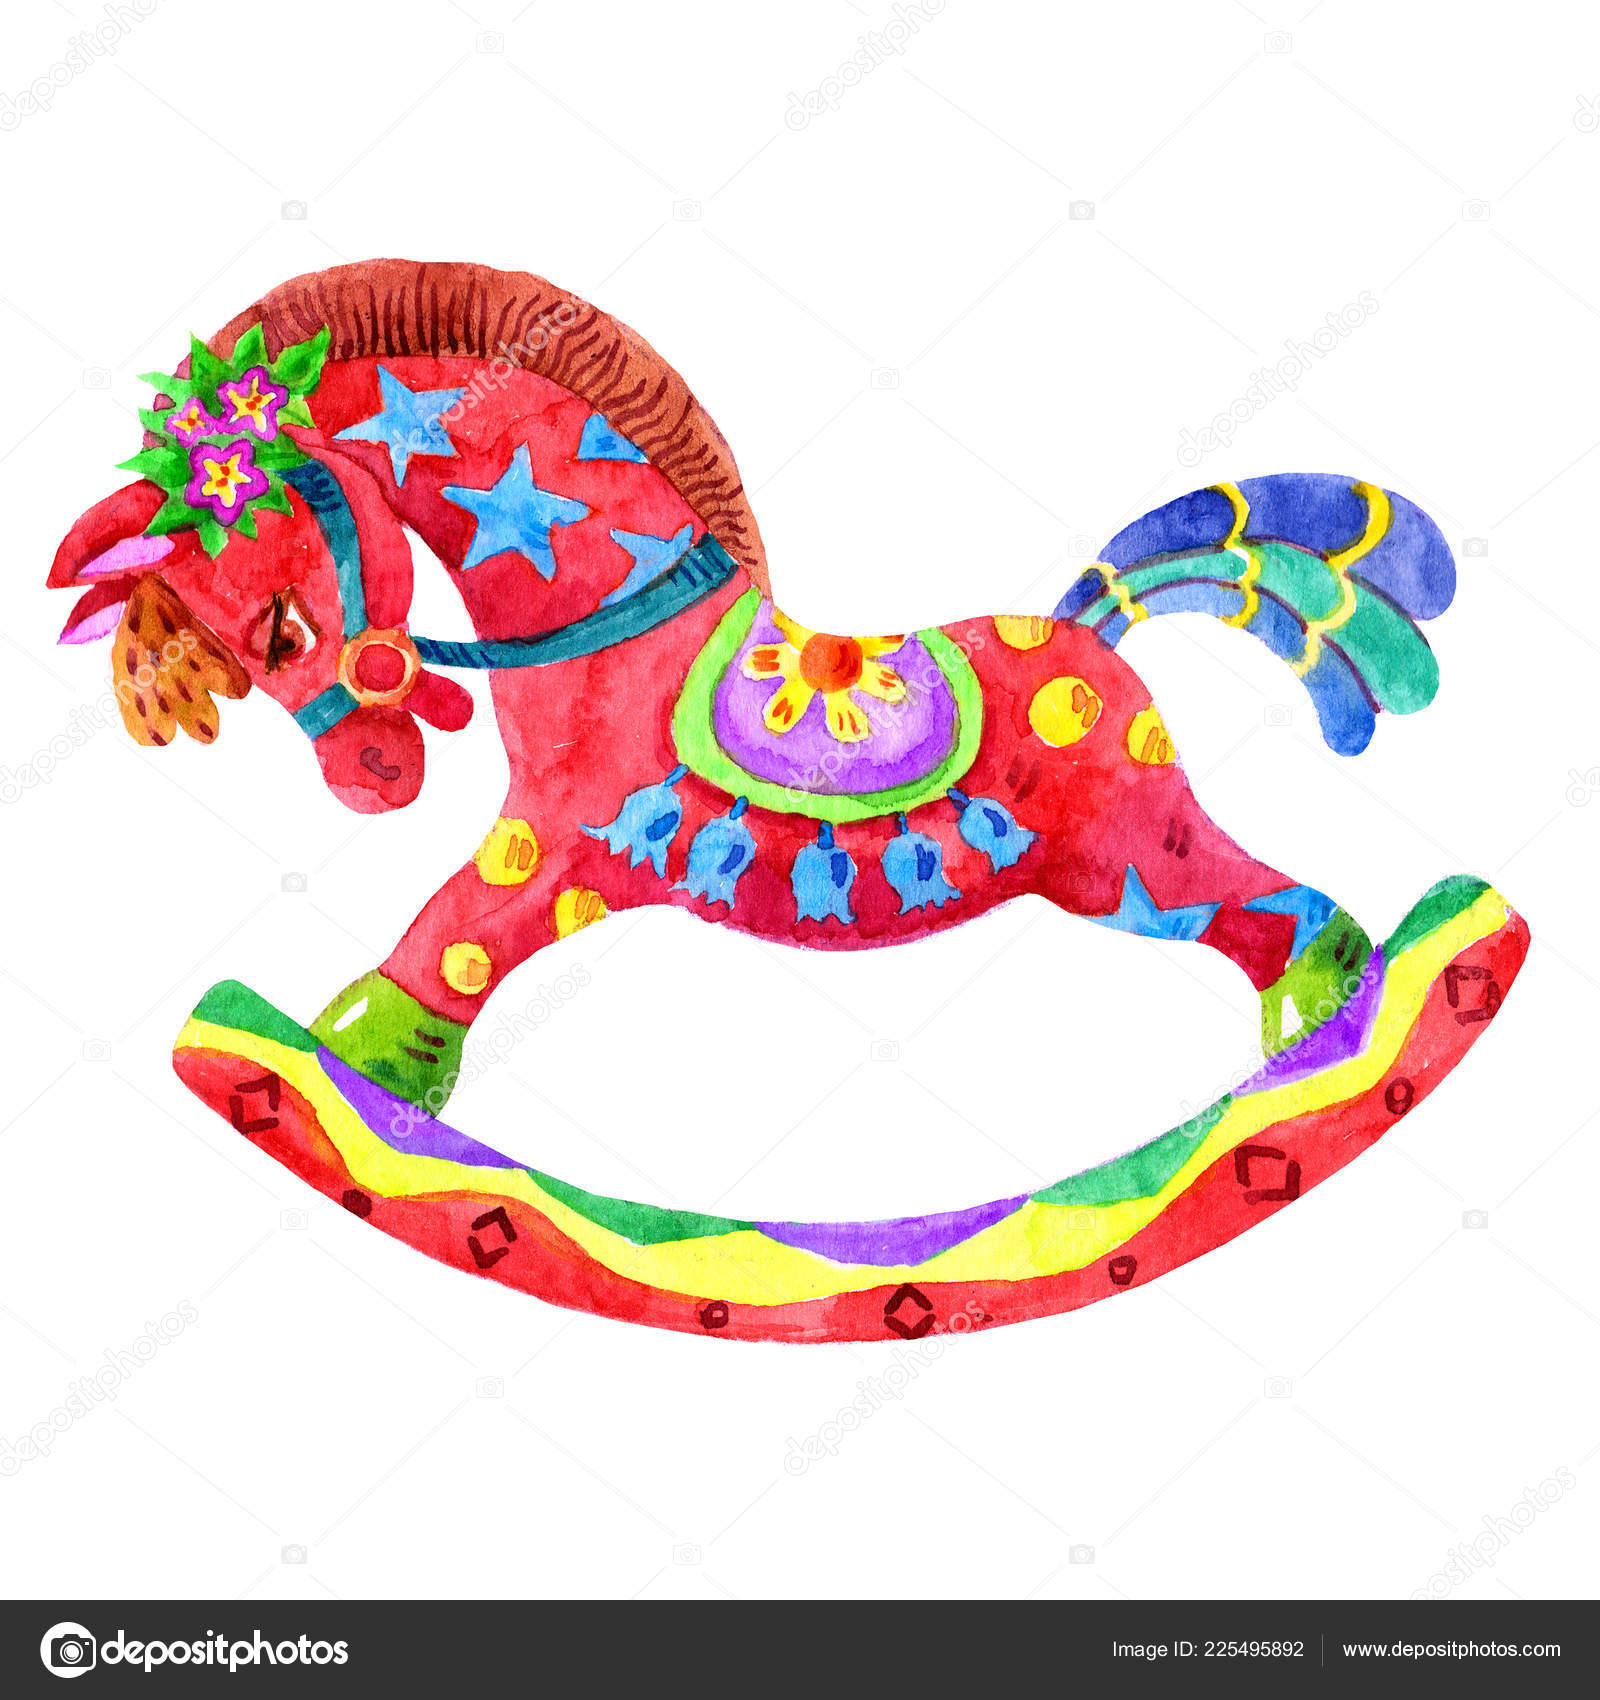 Cute Cartoon Watercolor Rocking Horse Isolated White Background